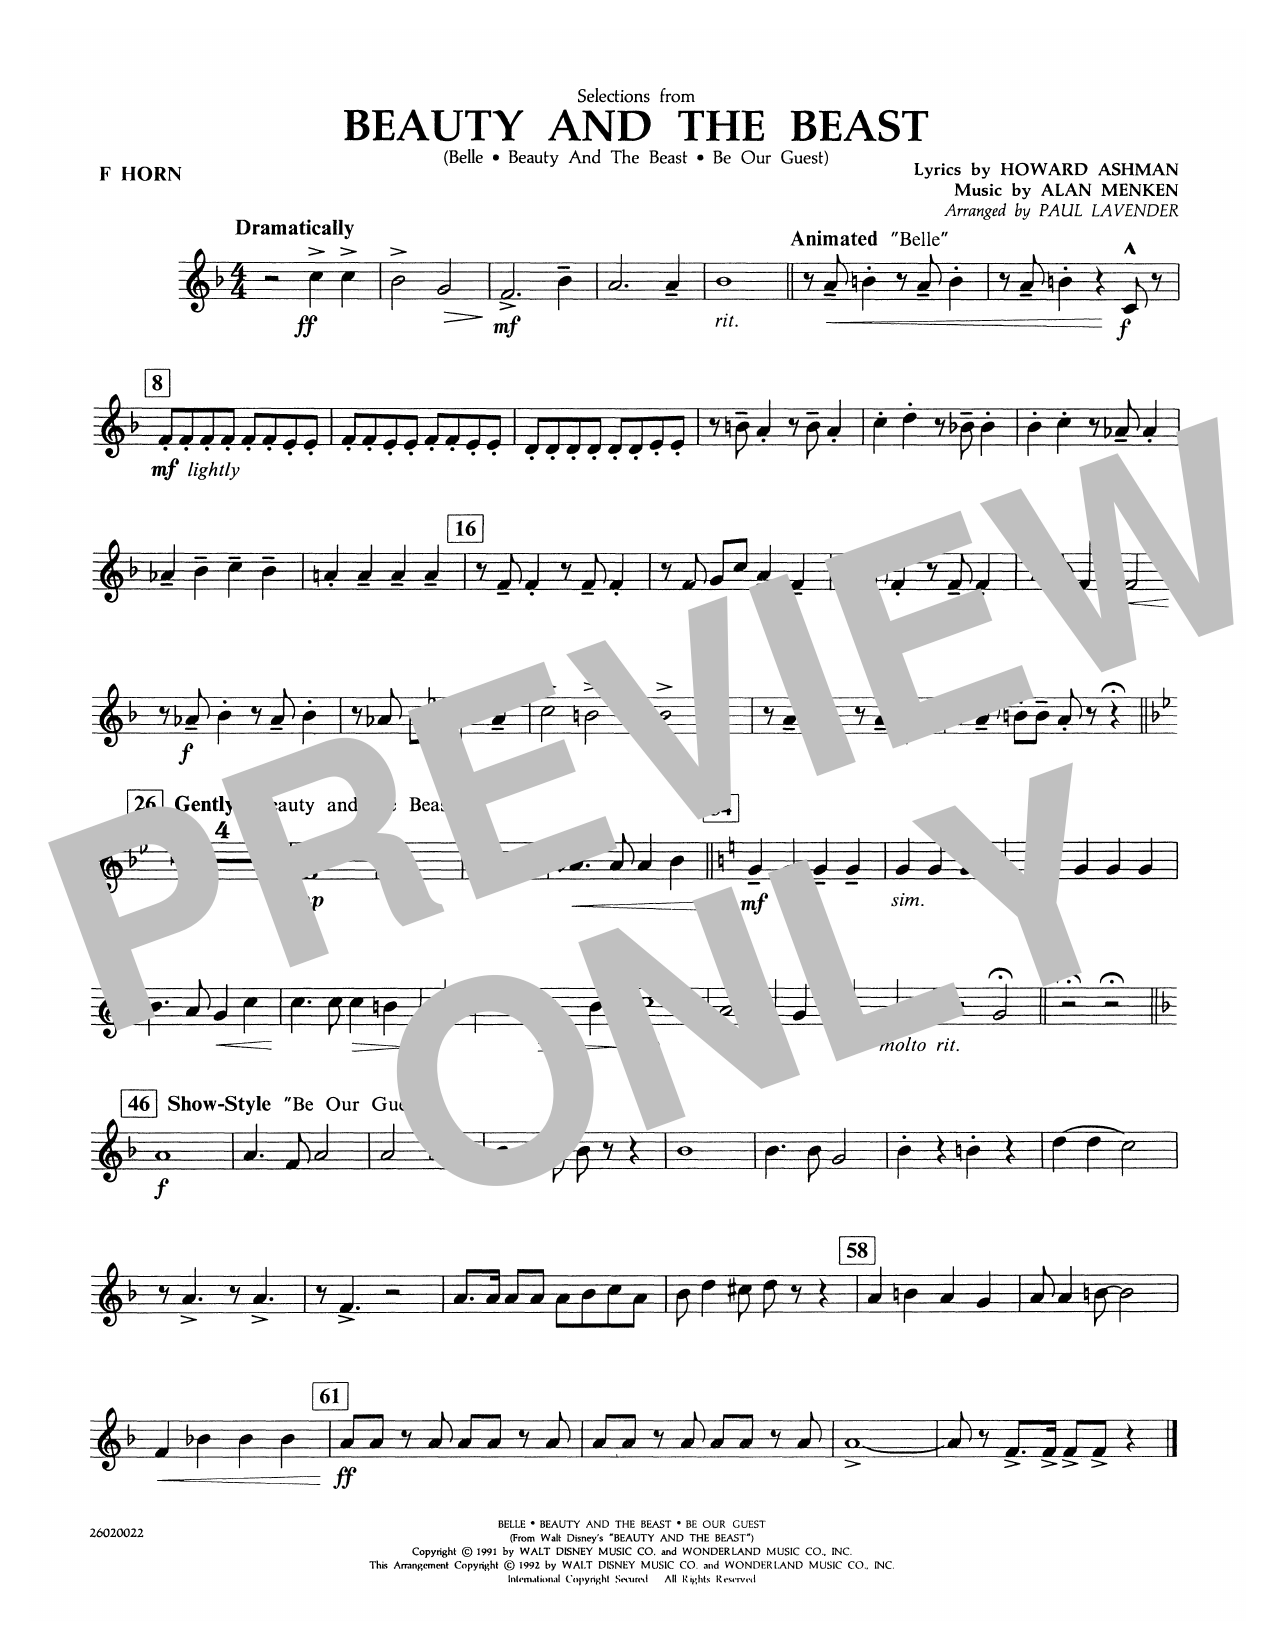 Selections from Beauty and the Beast - F Horn Partituras Digitales